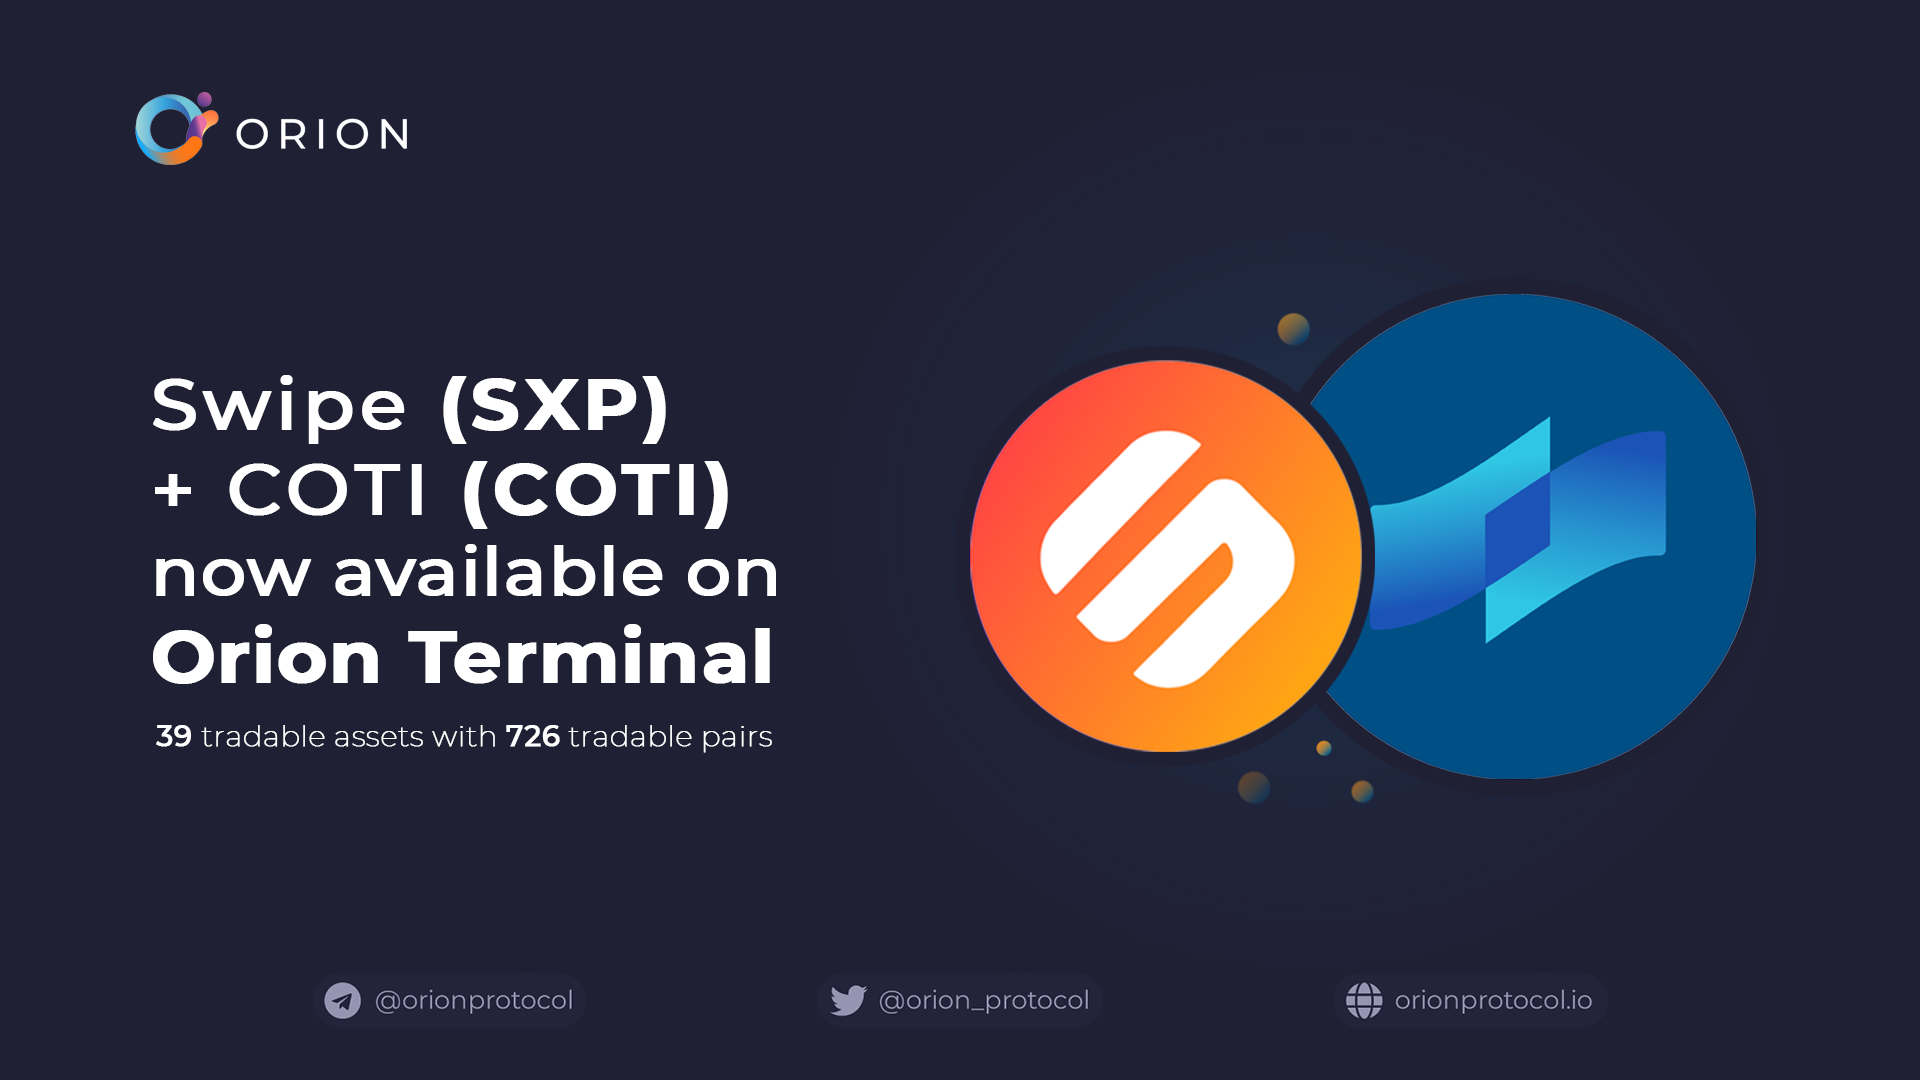 COTI + Swipe added to Orion Terminal